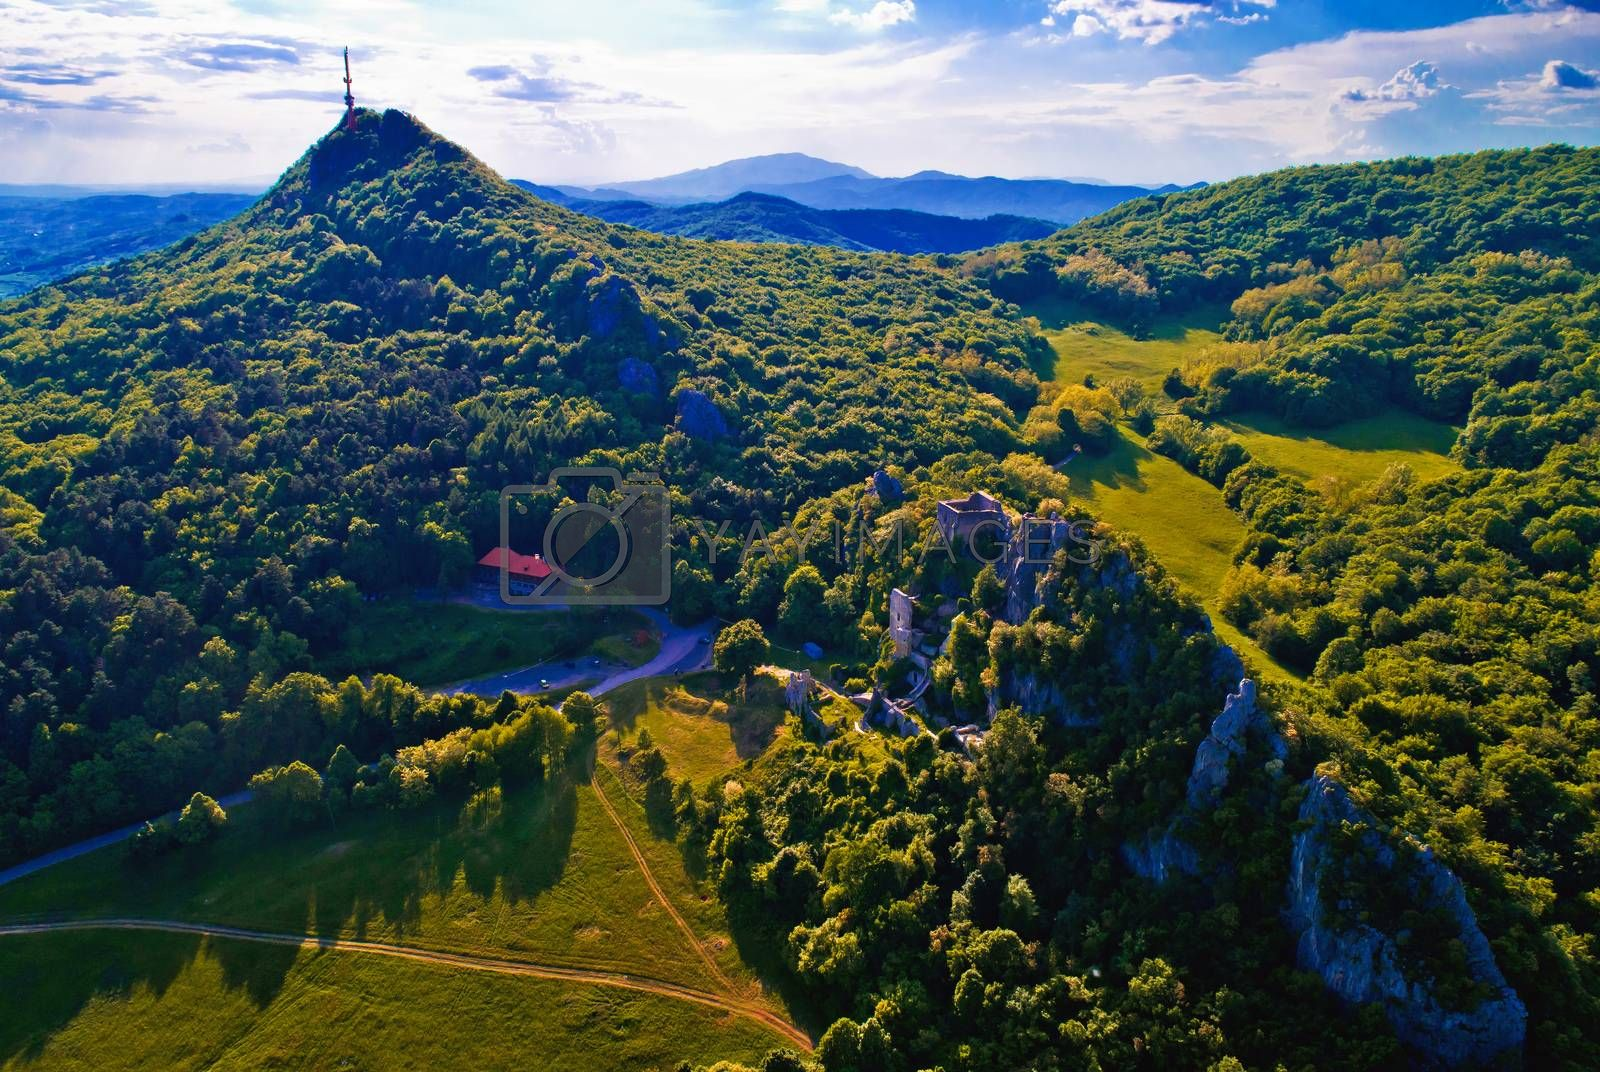 Kalnik mountain ridge and old fortress ruins aerial view, Prigorje region of Croatia